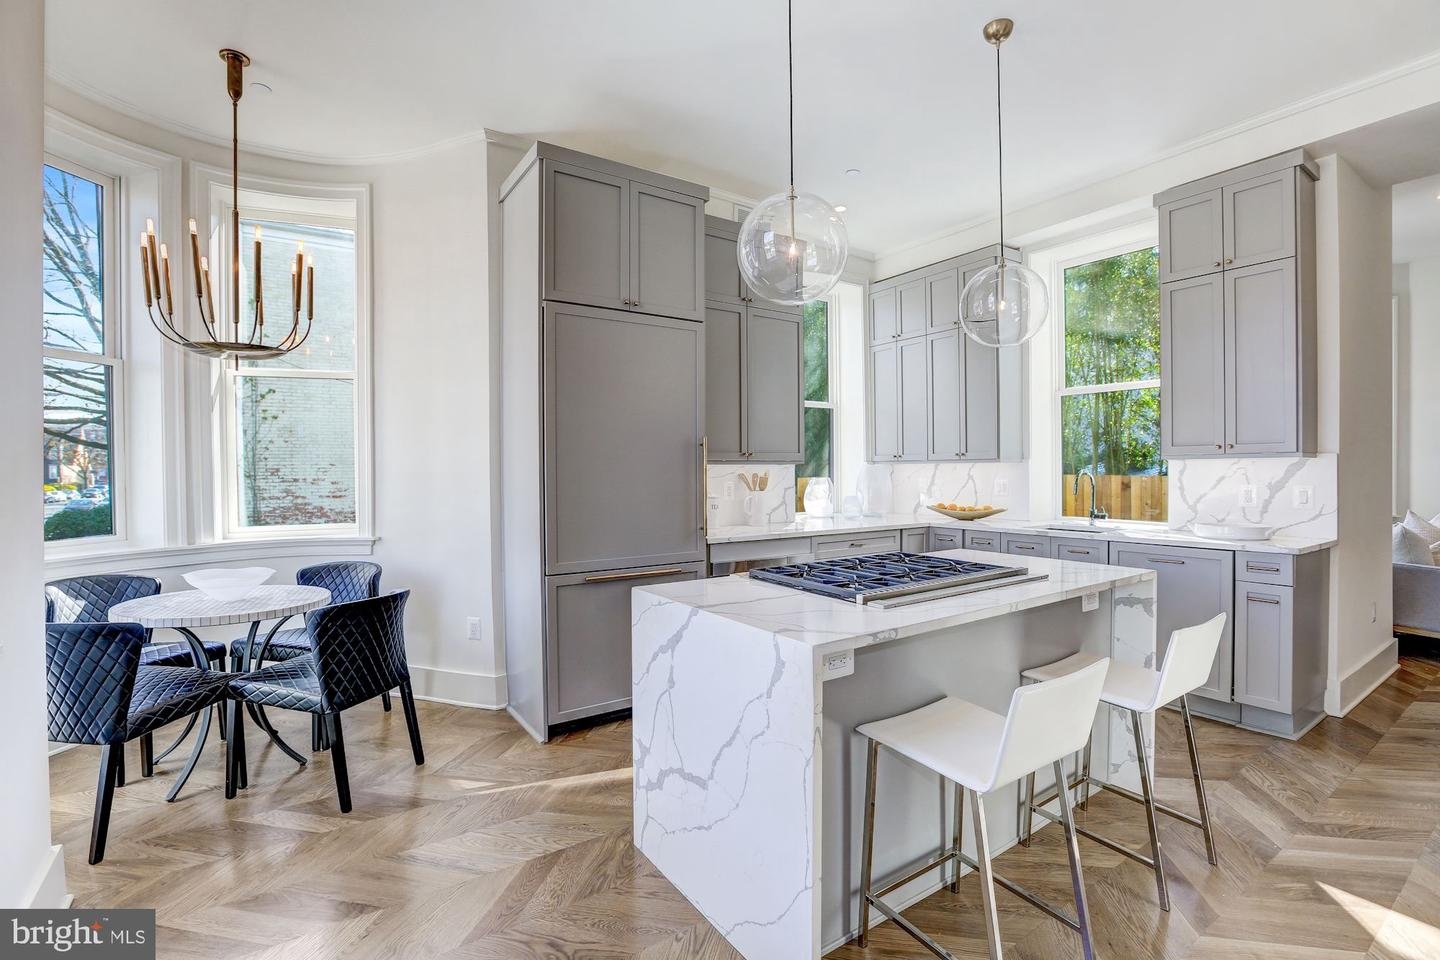 Single Family for Sale at 1810 15th St NW #1 1810 15th St NW #1 Washington, District Of Columbia 20009 United States